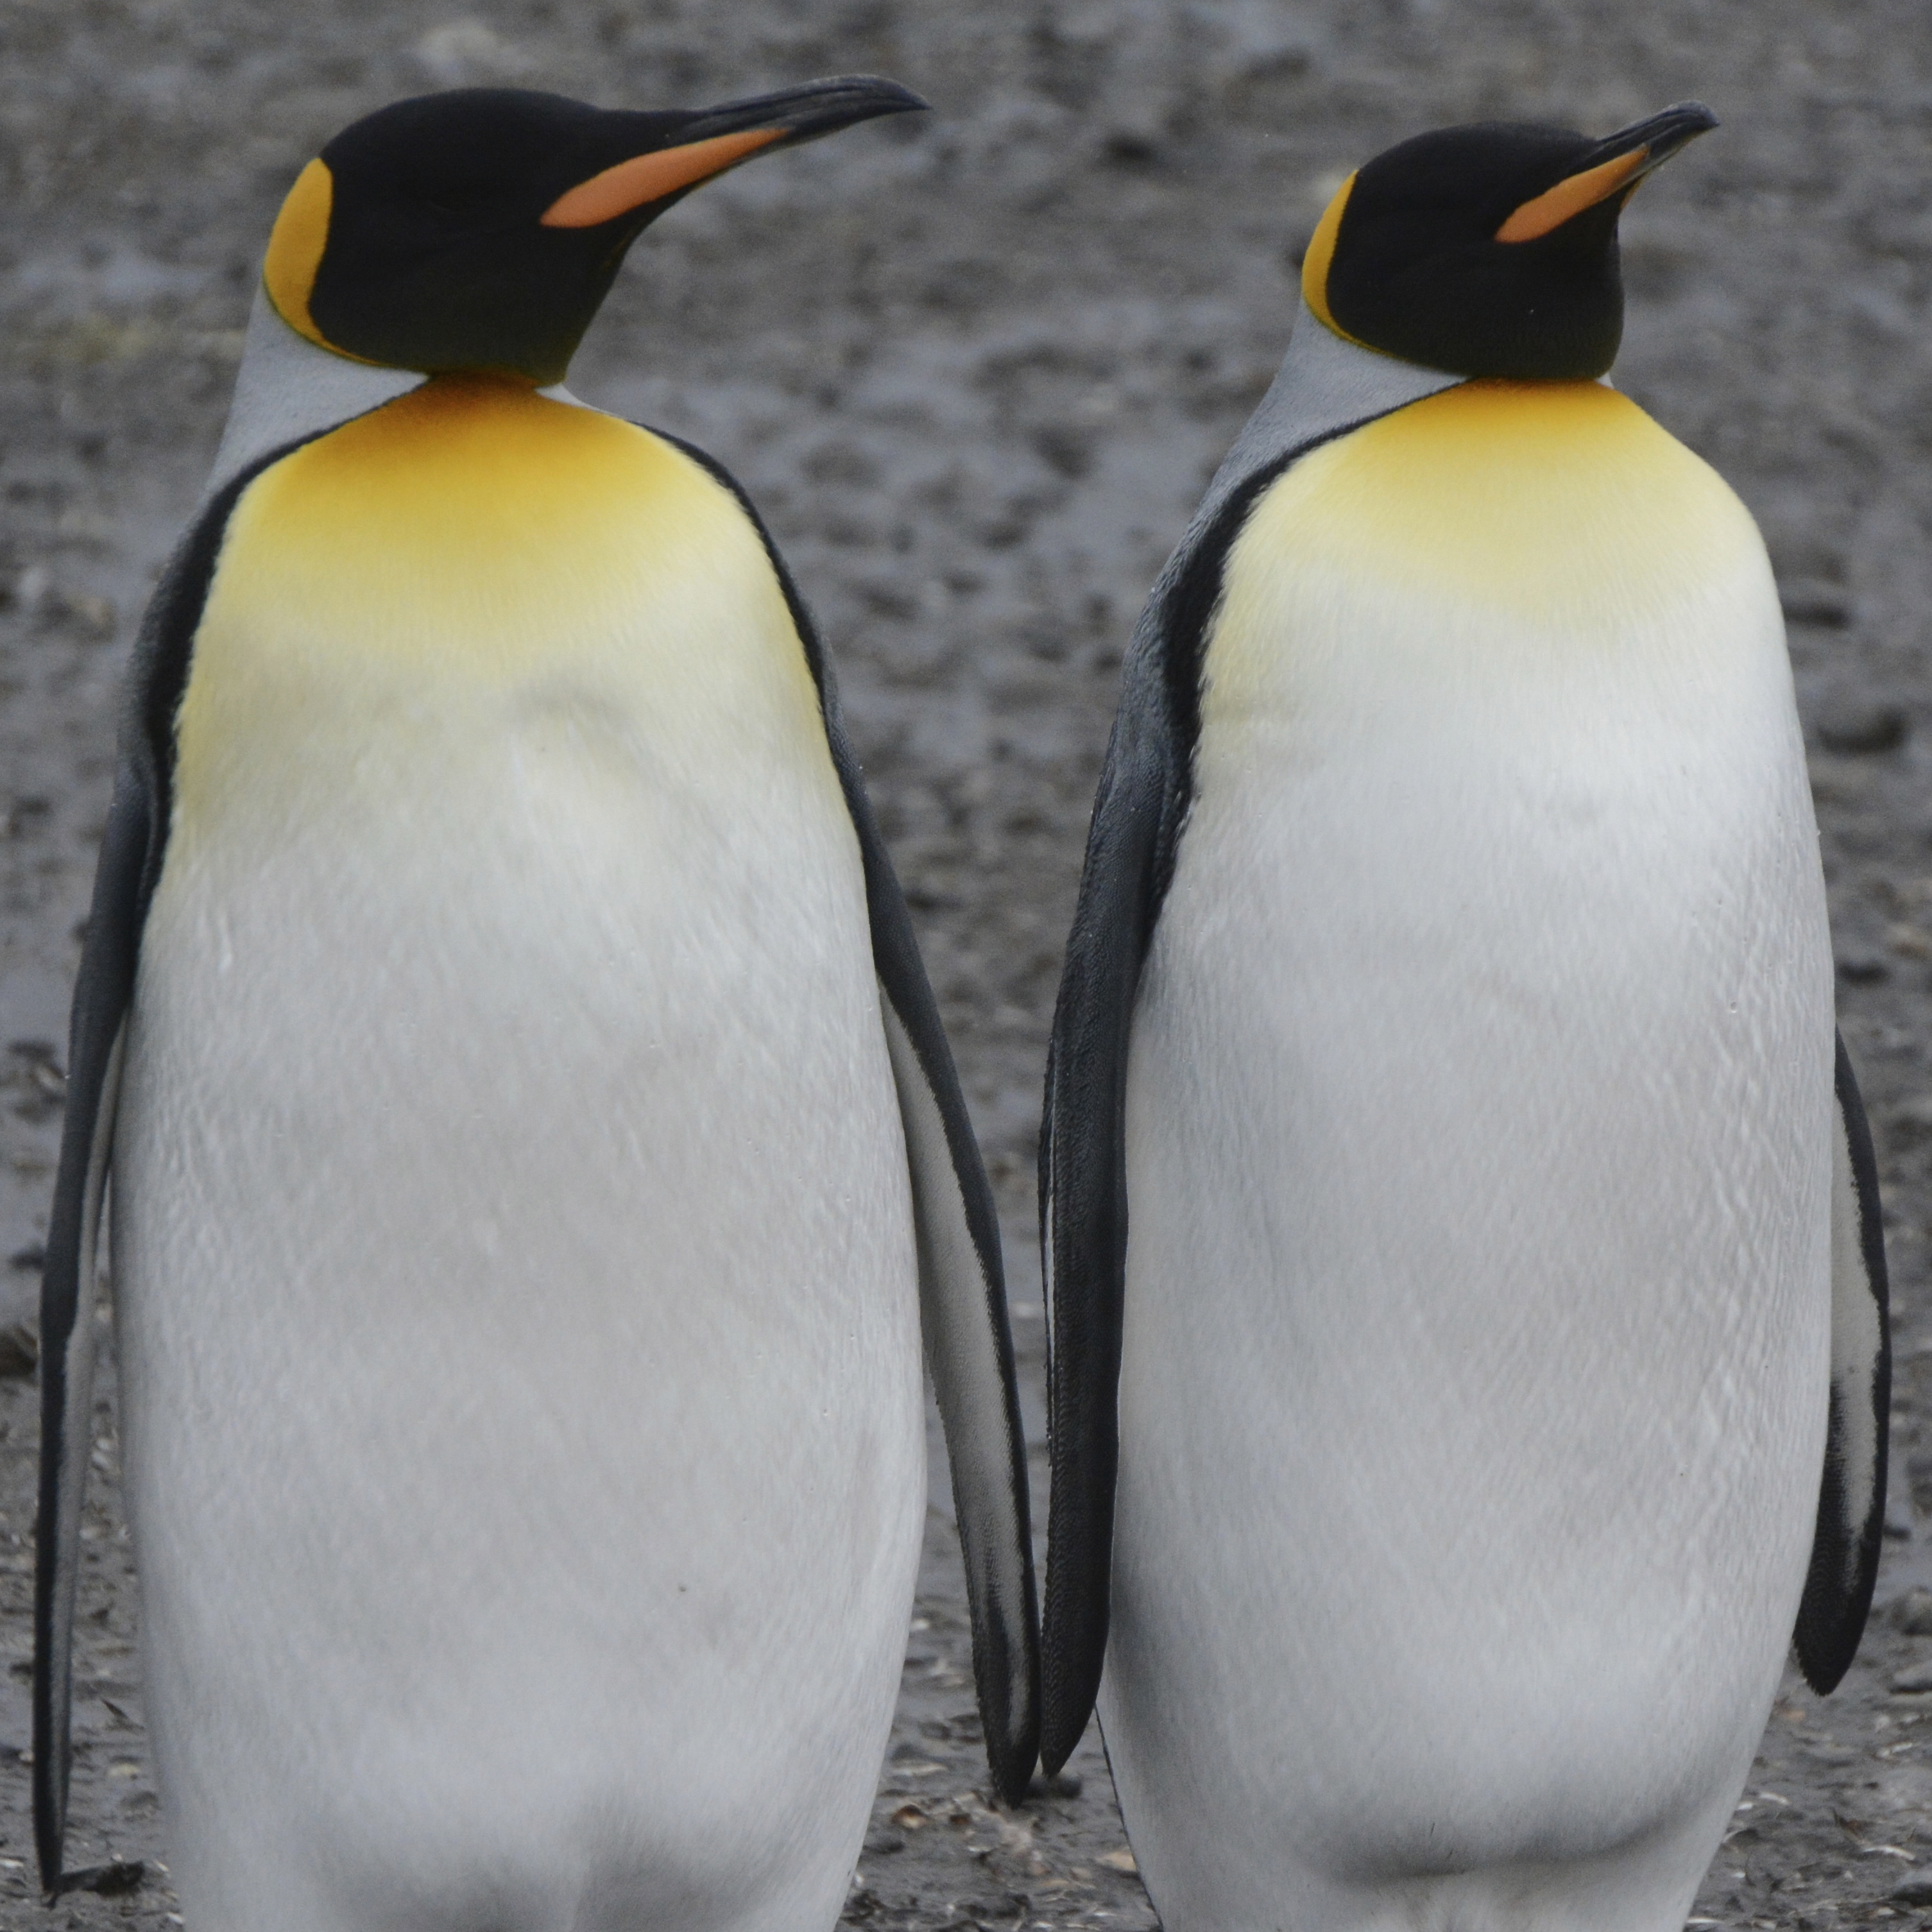 Adult King Penguins standing to attention at Salisbury Plains, South Georgia, Antarctica. www.gypsyat60.com